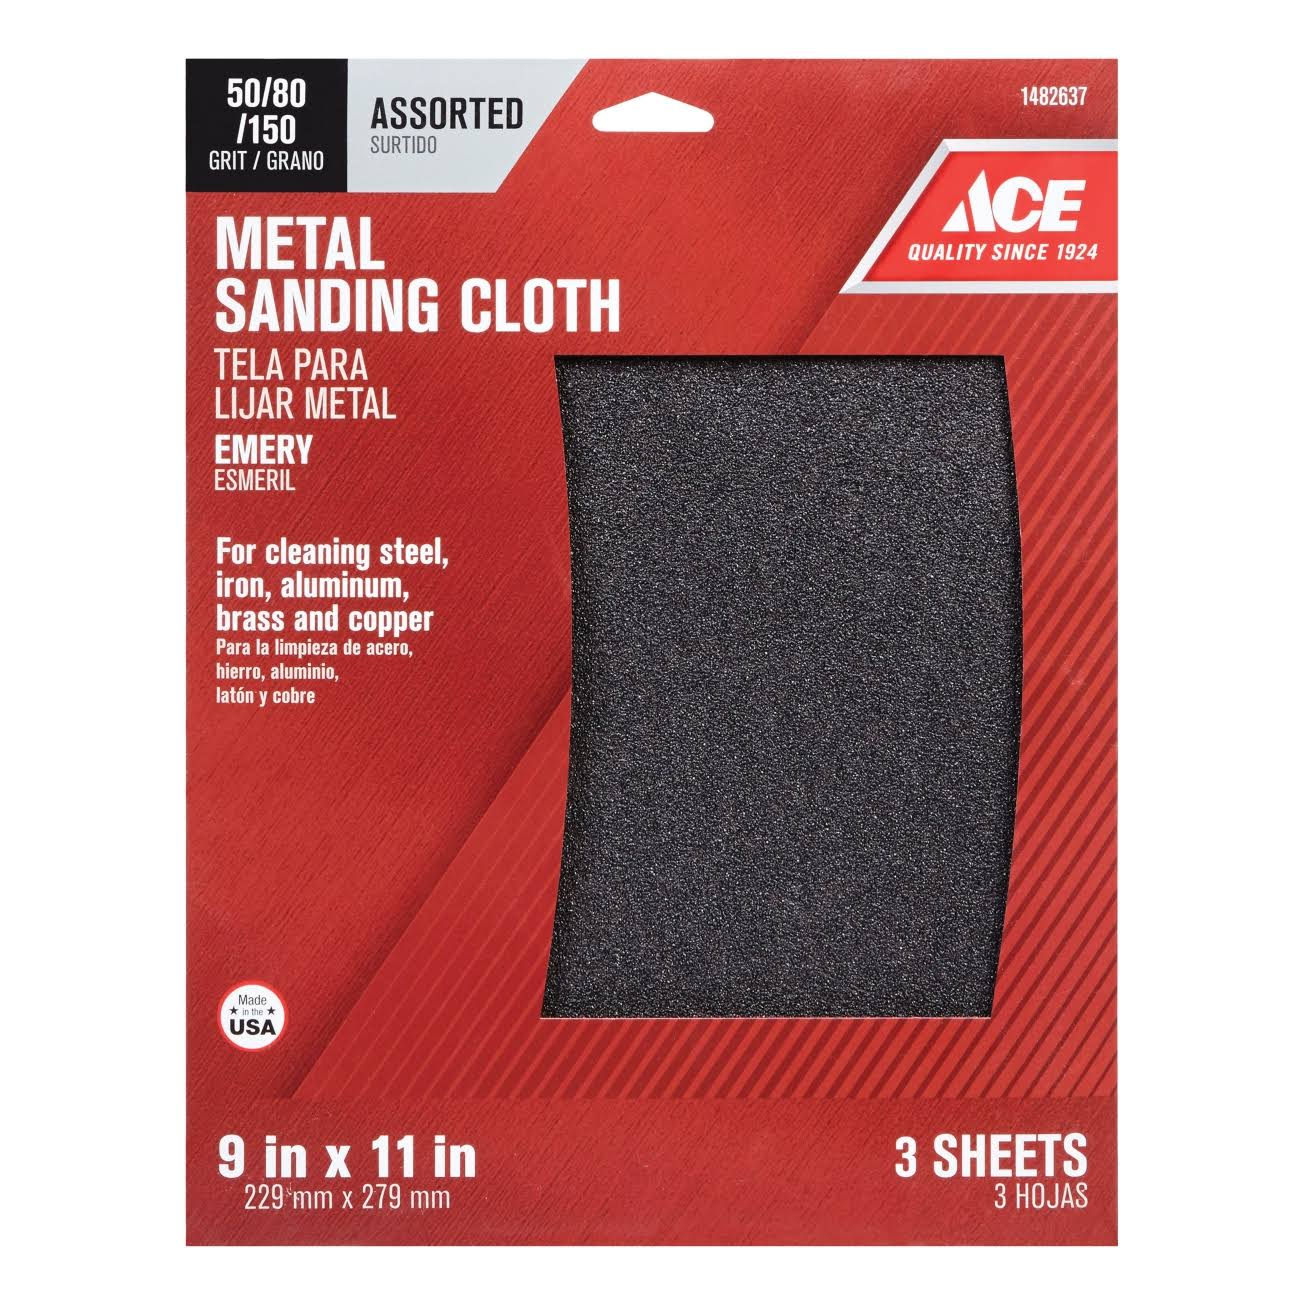 Ace Metal Sanding Cloth